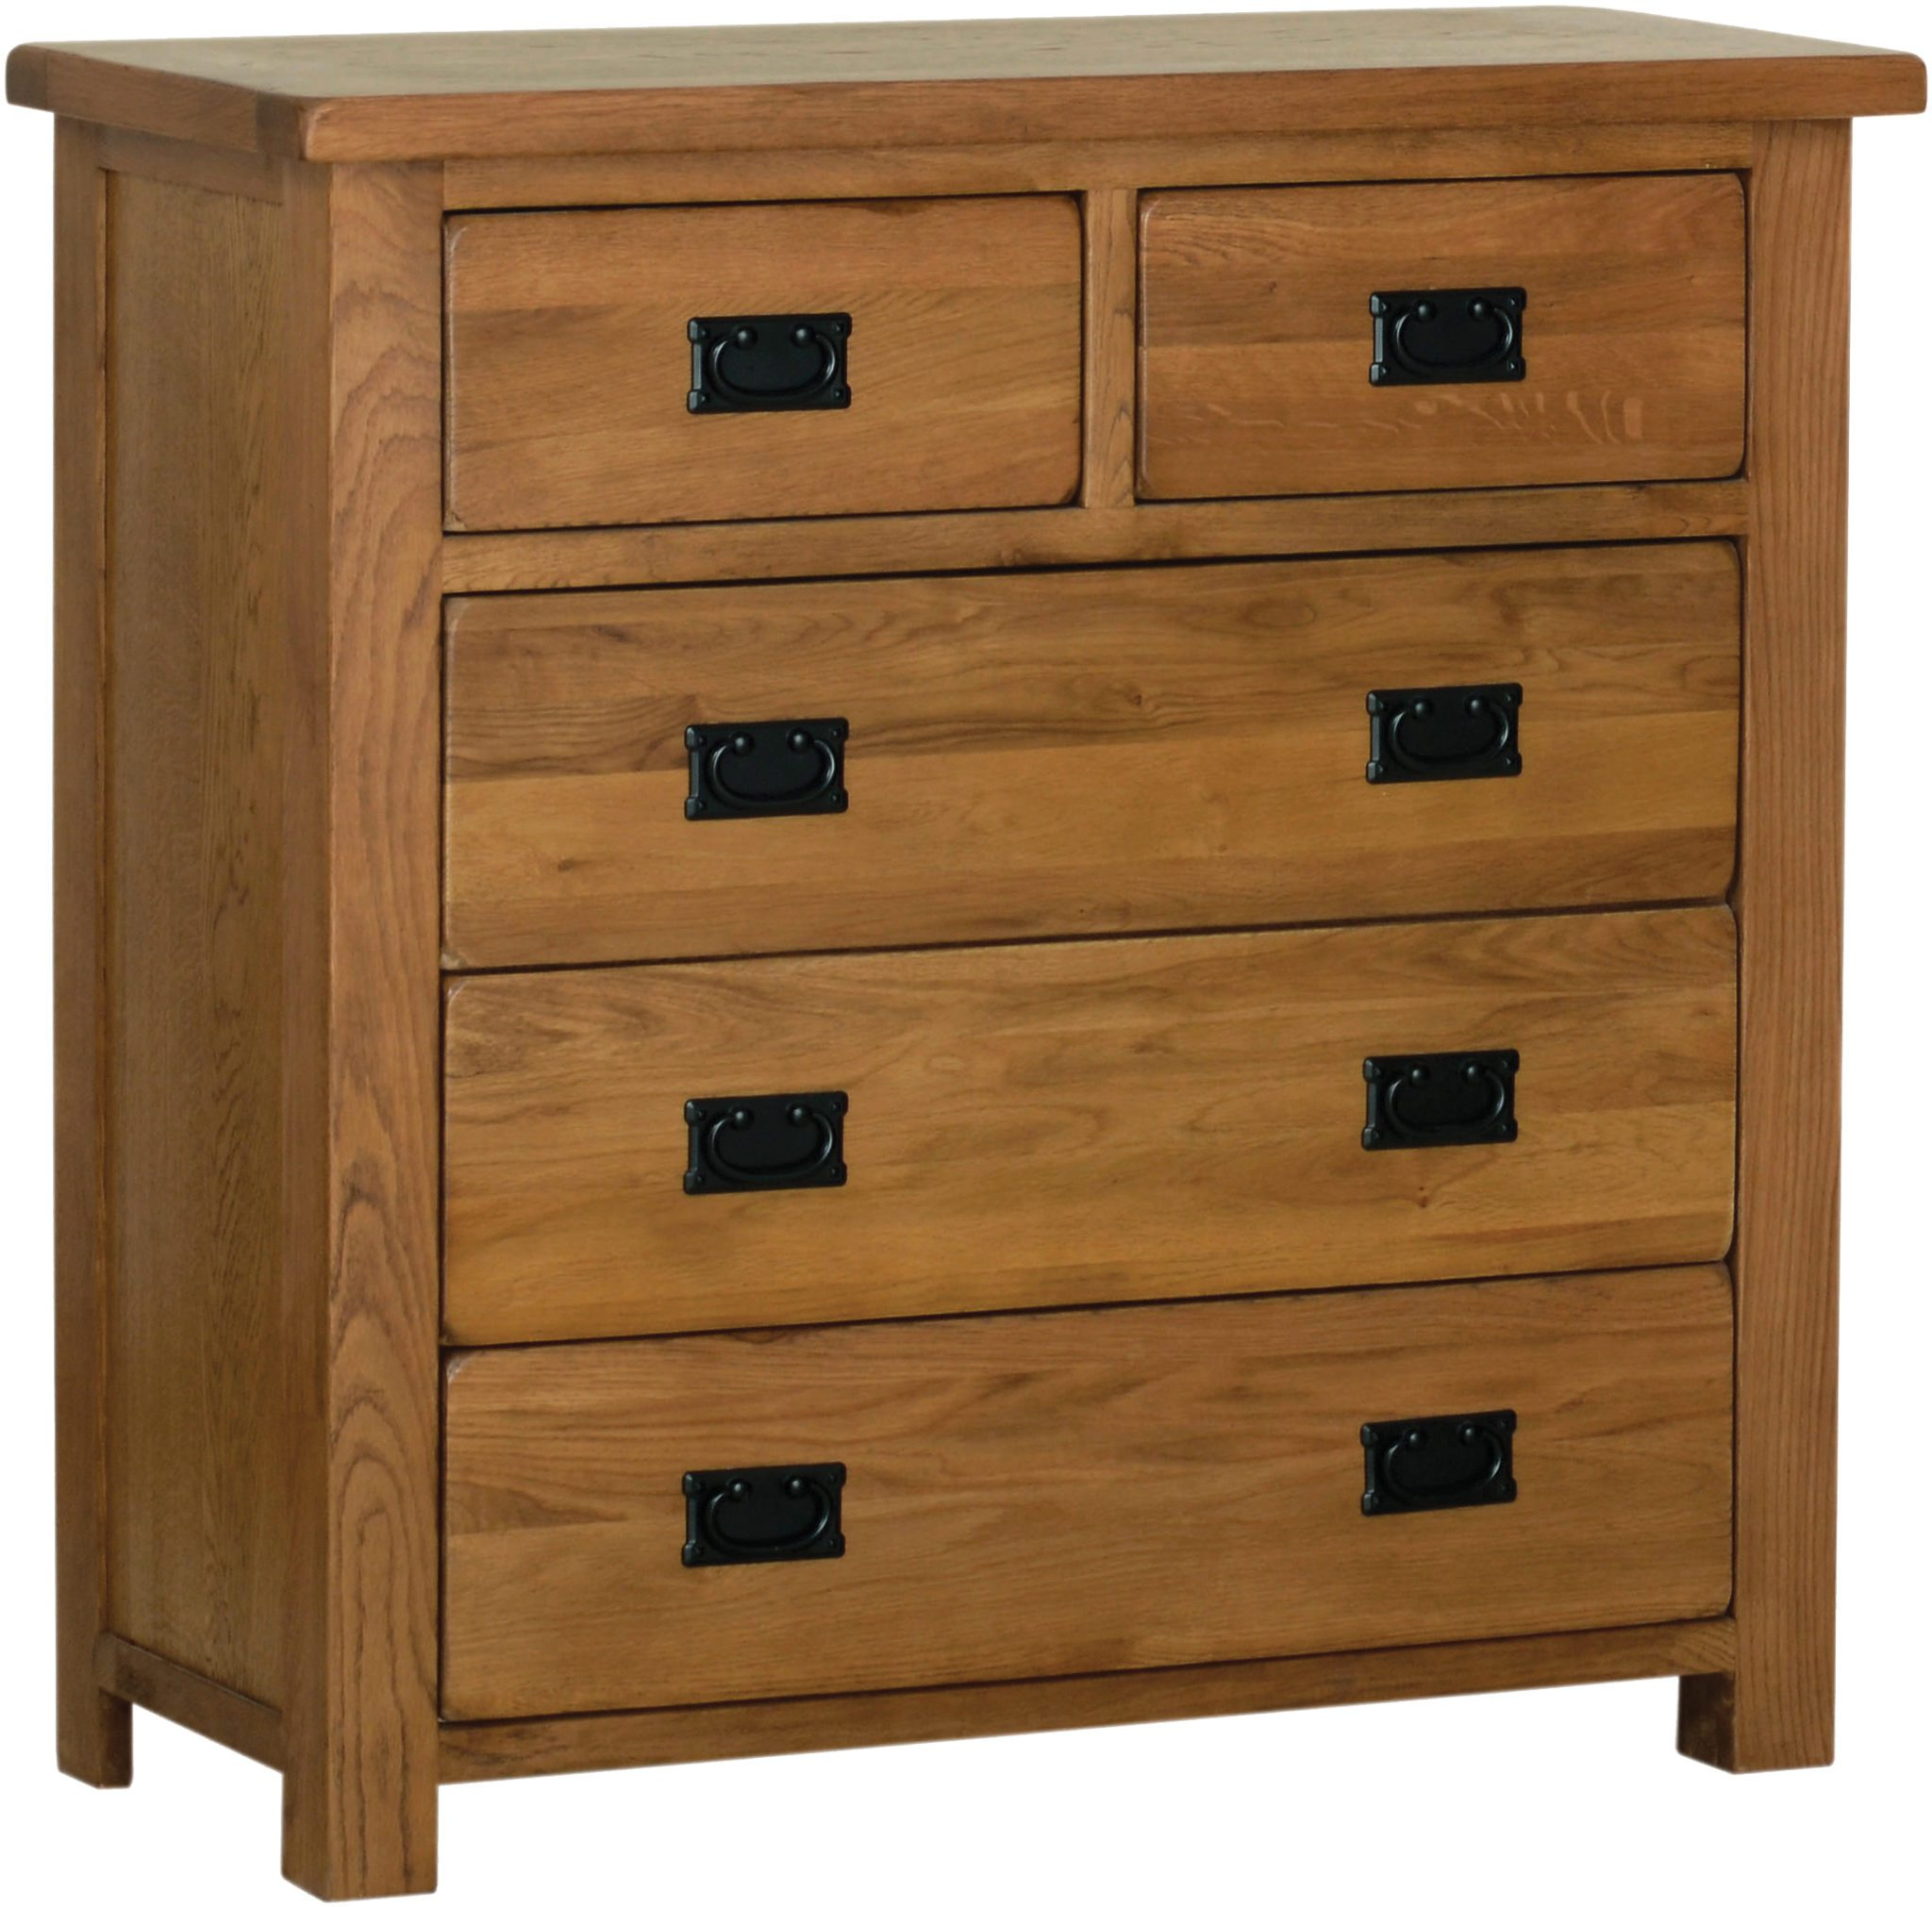 Sudbury Oak 3+2 chest drawers rustic oak style straight lines and shaped edges on tops. rustic black drop down handles. SRC70